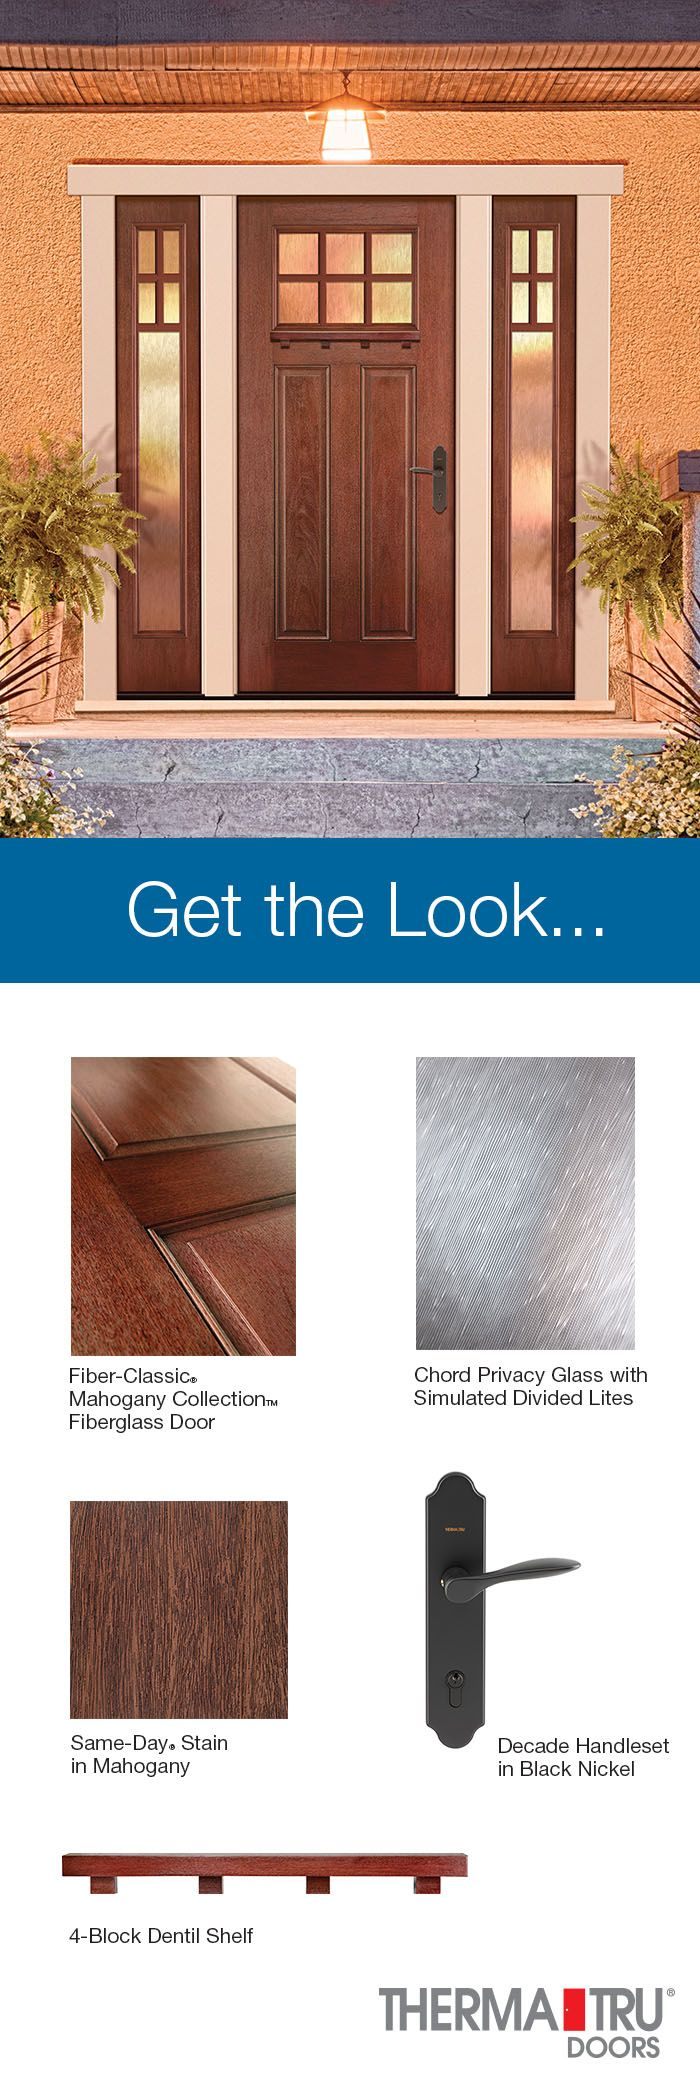 Therma Tru Fiber Classic Mahogany Collection Fiberglass Door With Same Day  Stain In